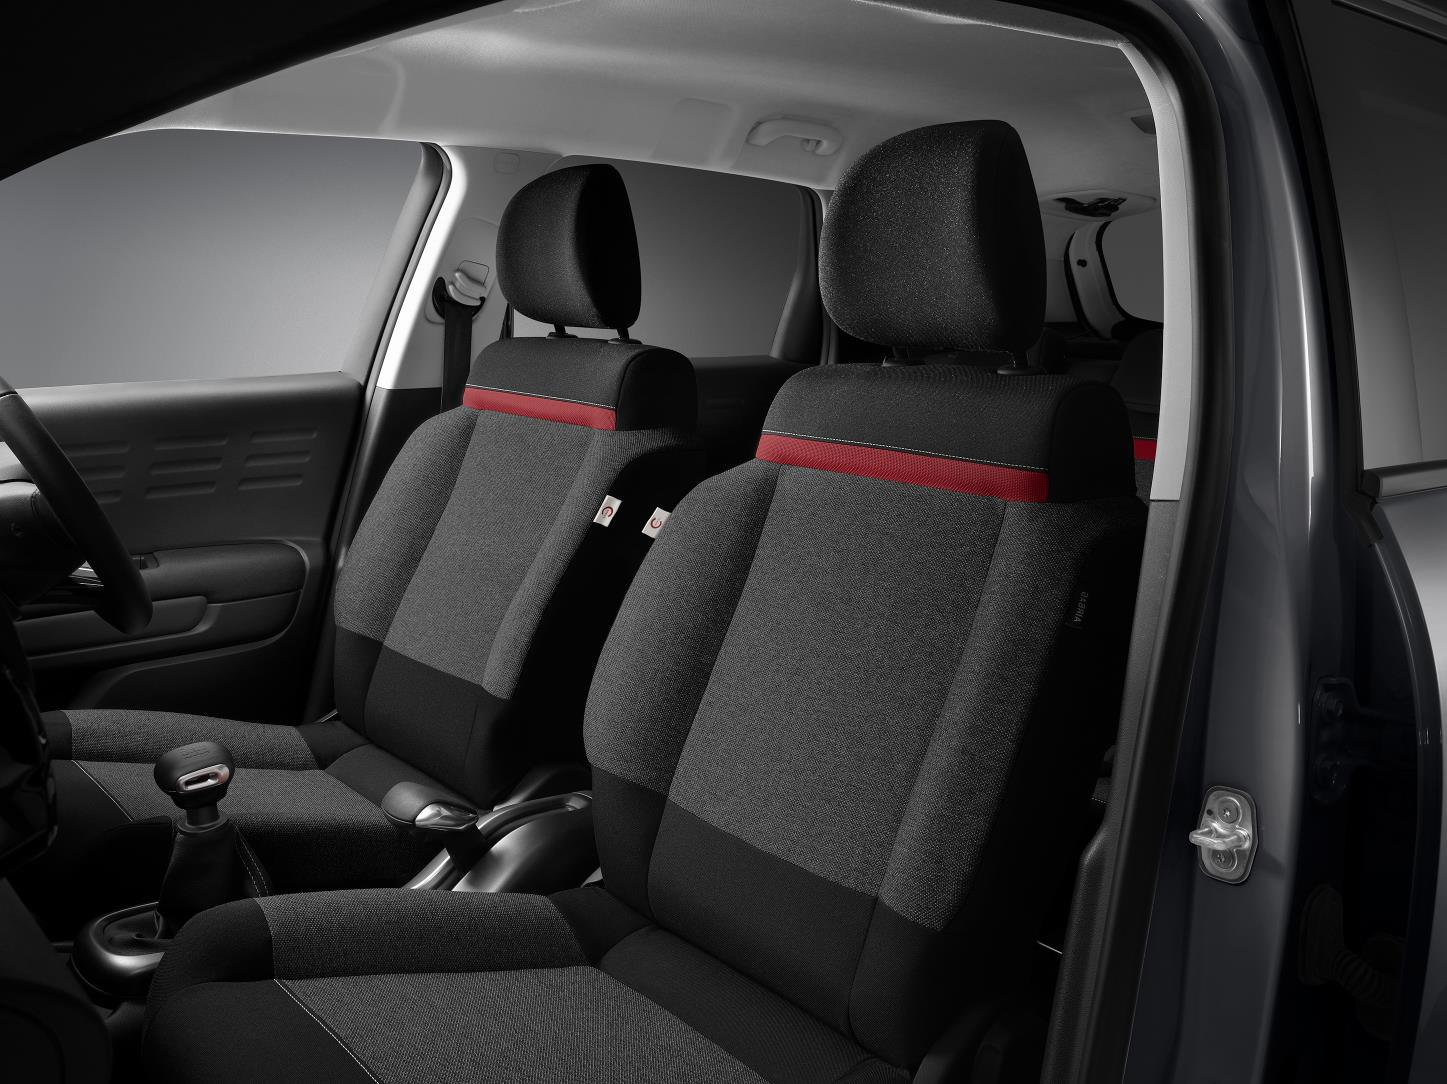 The seats benefit from unique C-Series badges